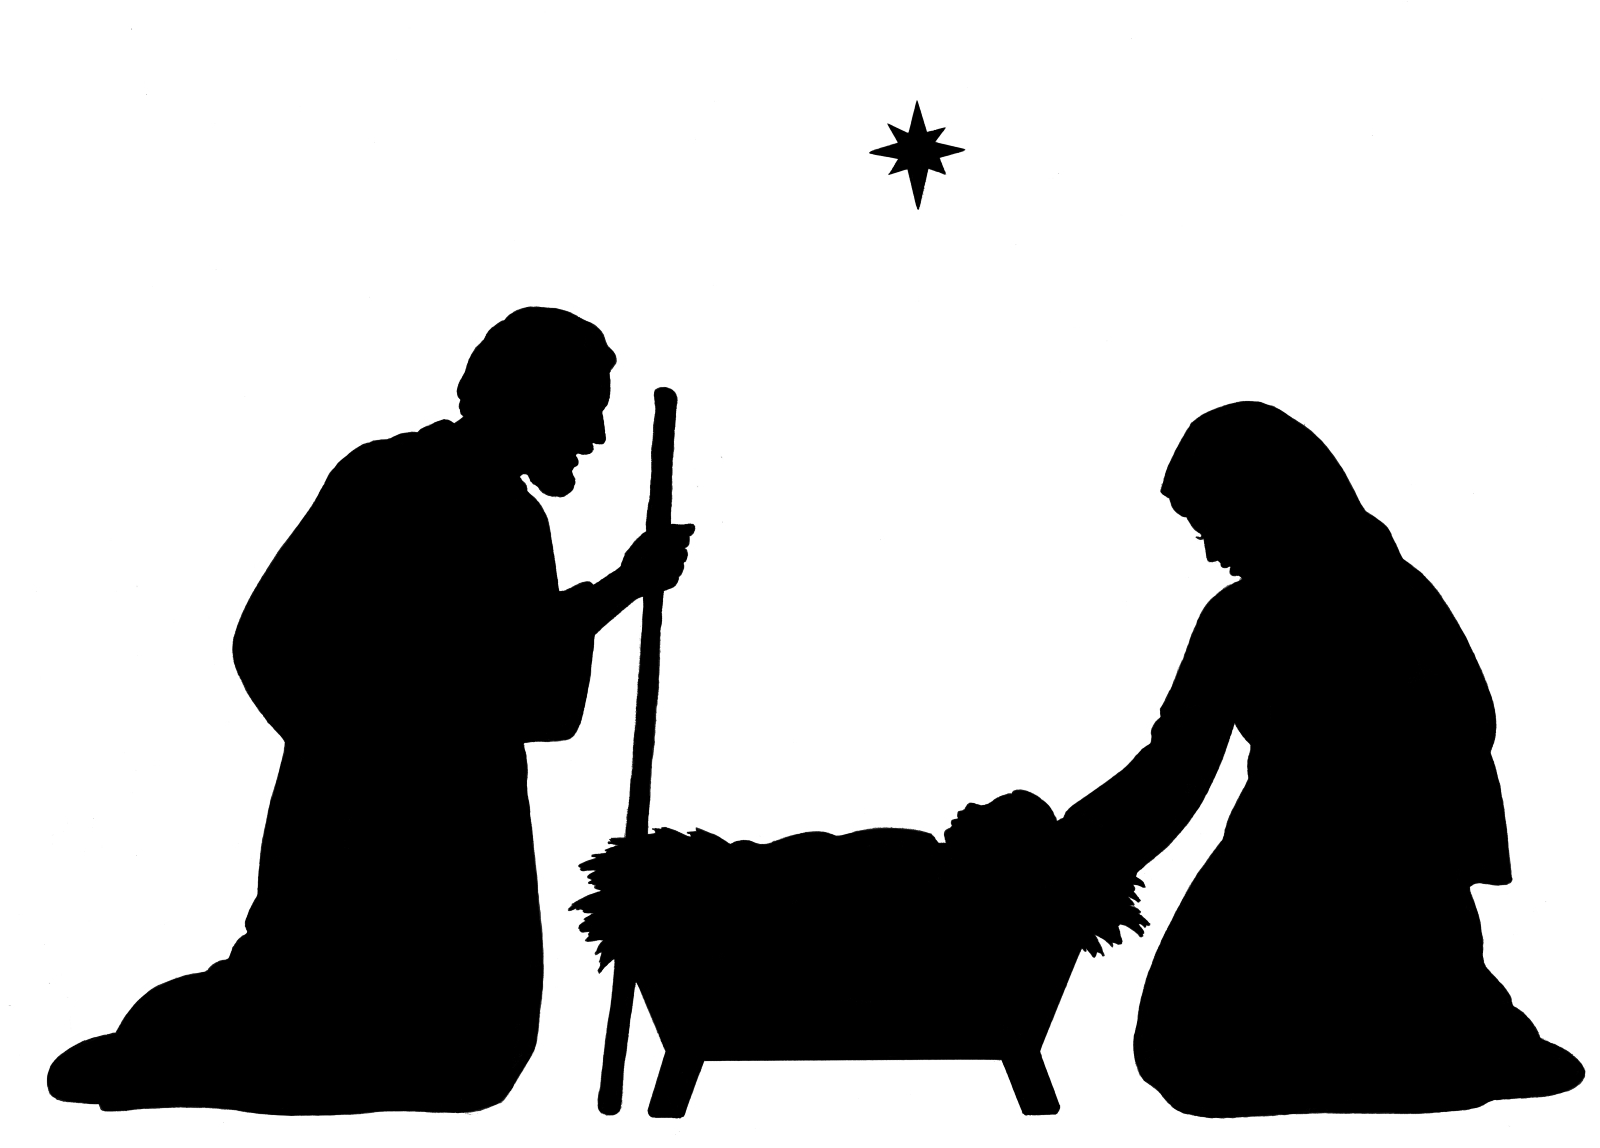 Christmas nativity clipart black and white free graphic freeuse library Free Nativity Black Cliparts, Download Free Clip Art, Free Clip Art ... graphic freeuse library